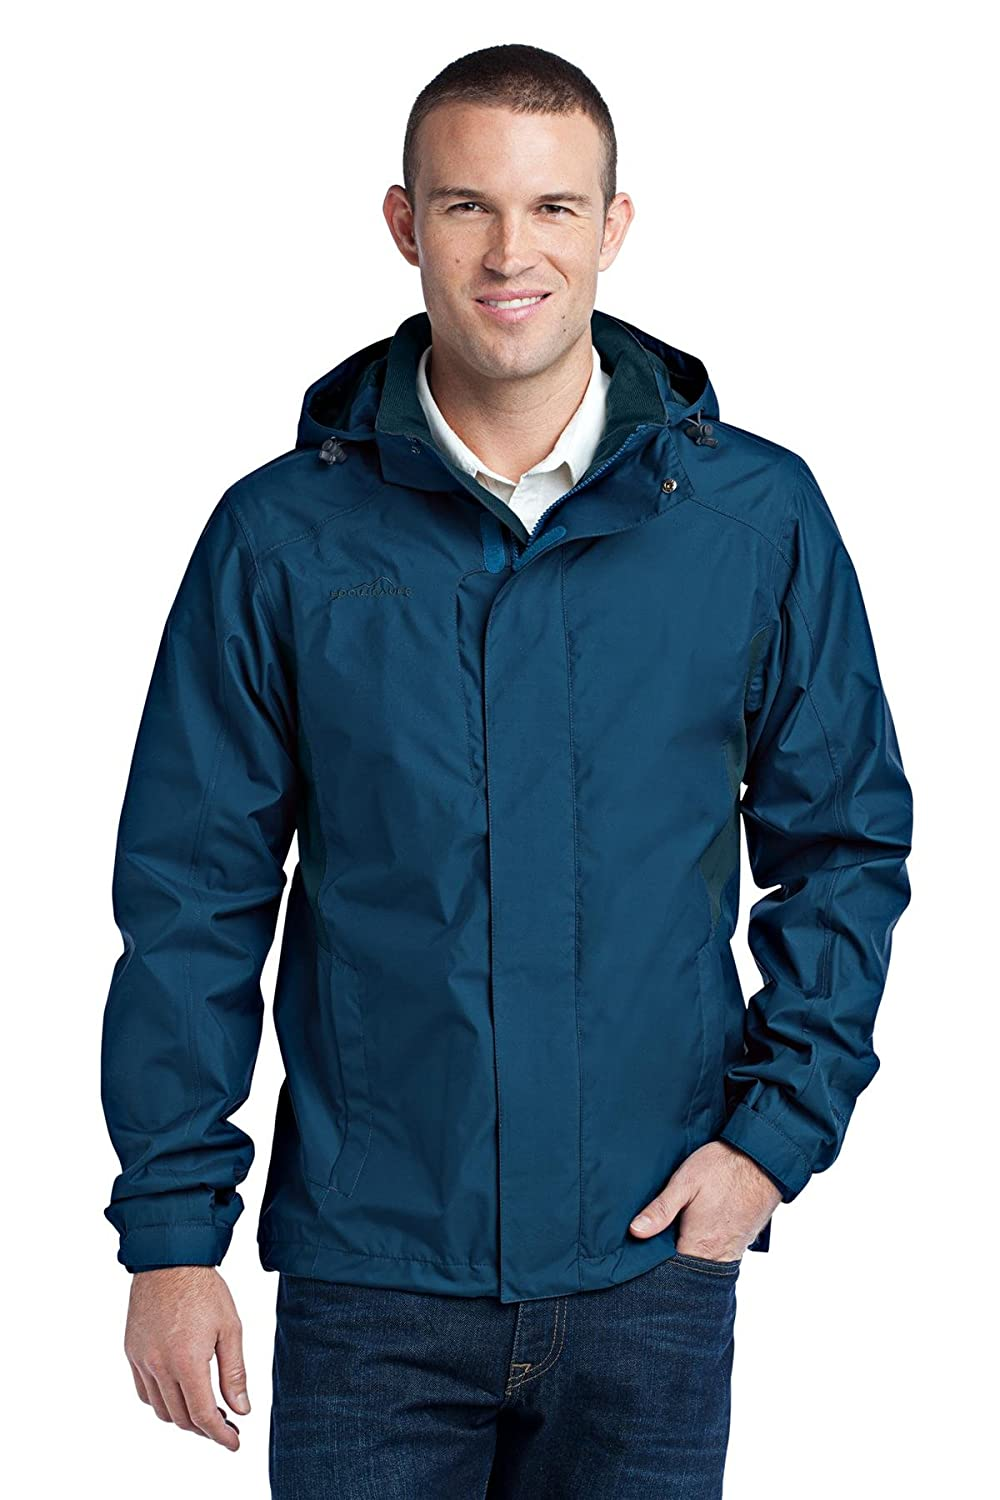 Eddie Bauer – 雨ジャケット B013XO6P9O Deep Sea Blue/Dark Adriatic XX-Large